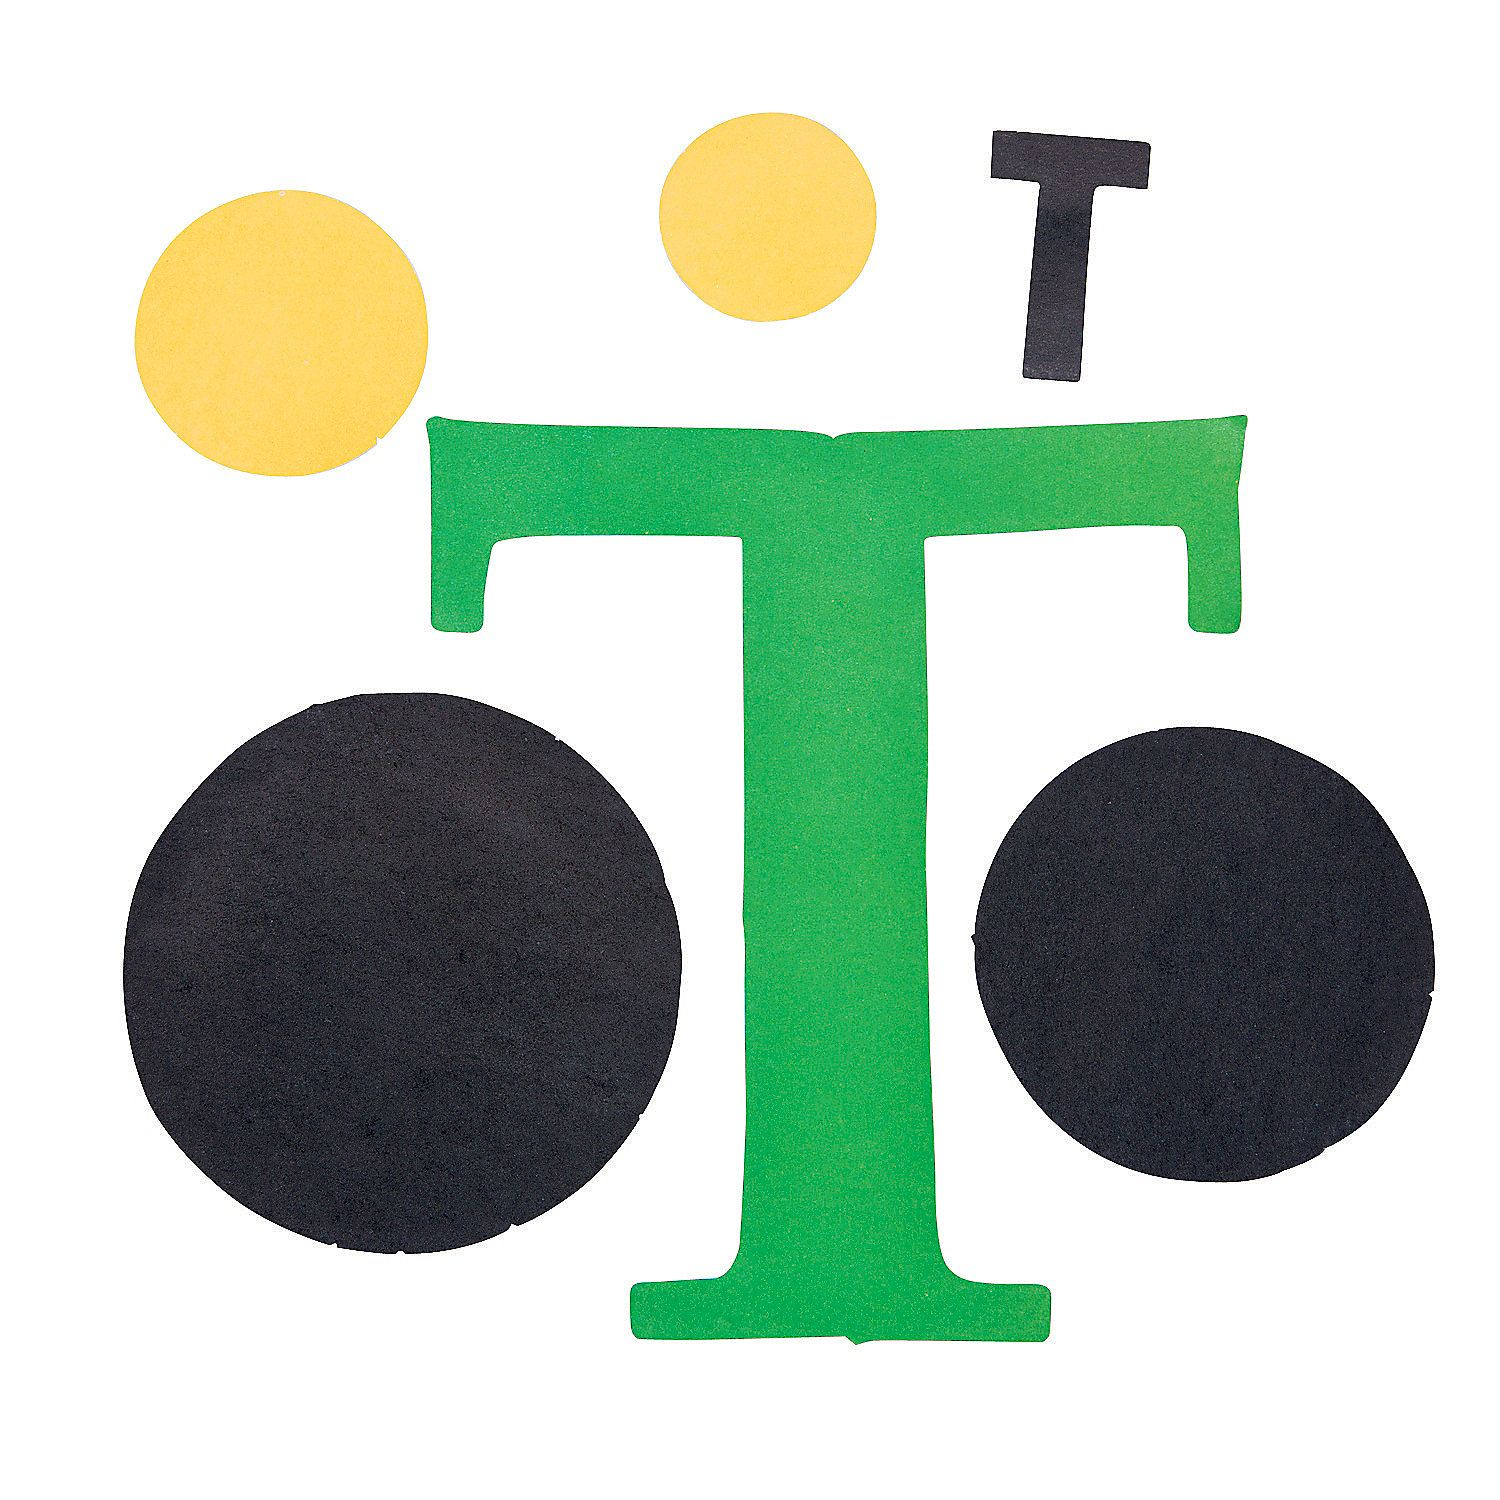 Oriental trading christian crafts -  T Is For Tractors Letter T Craft Kit Oriental Trading